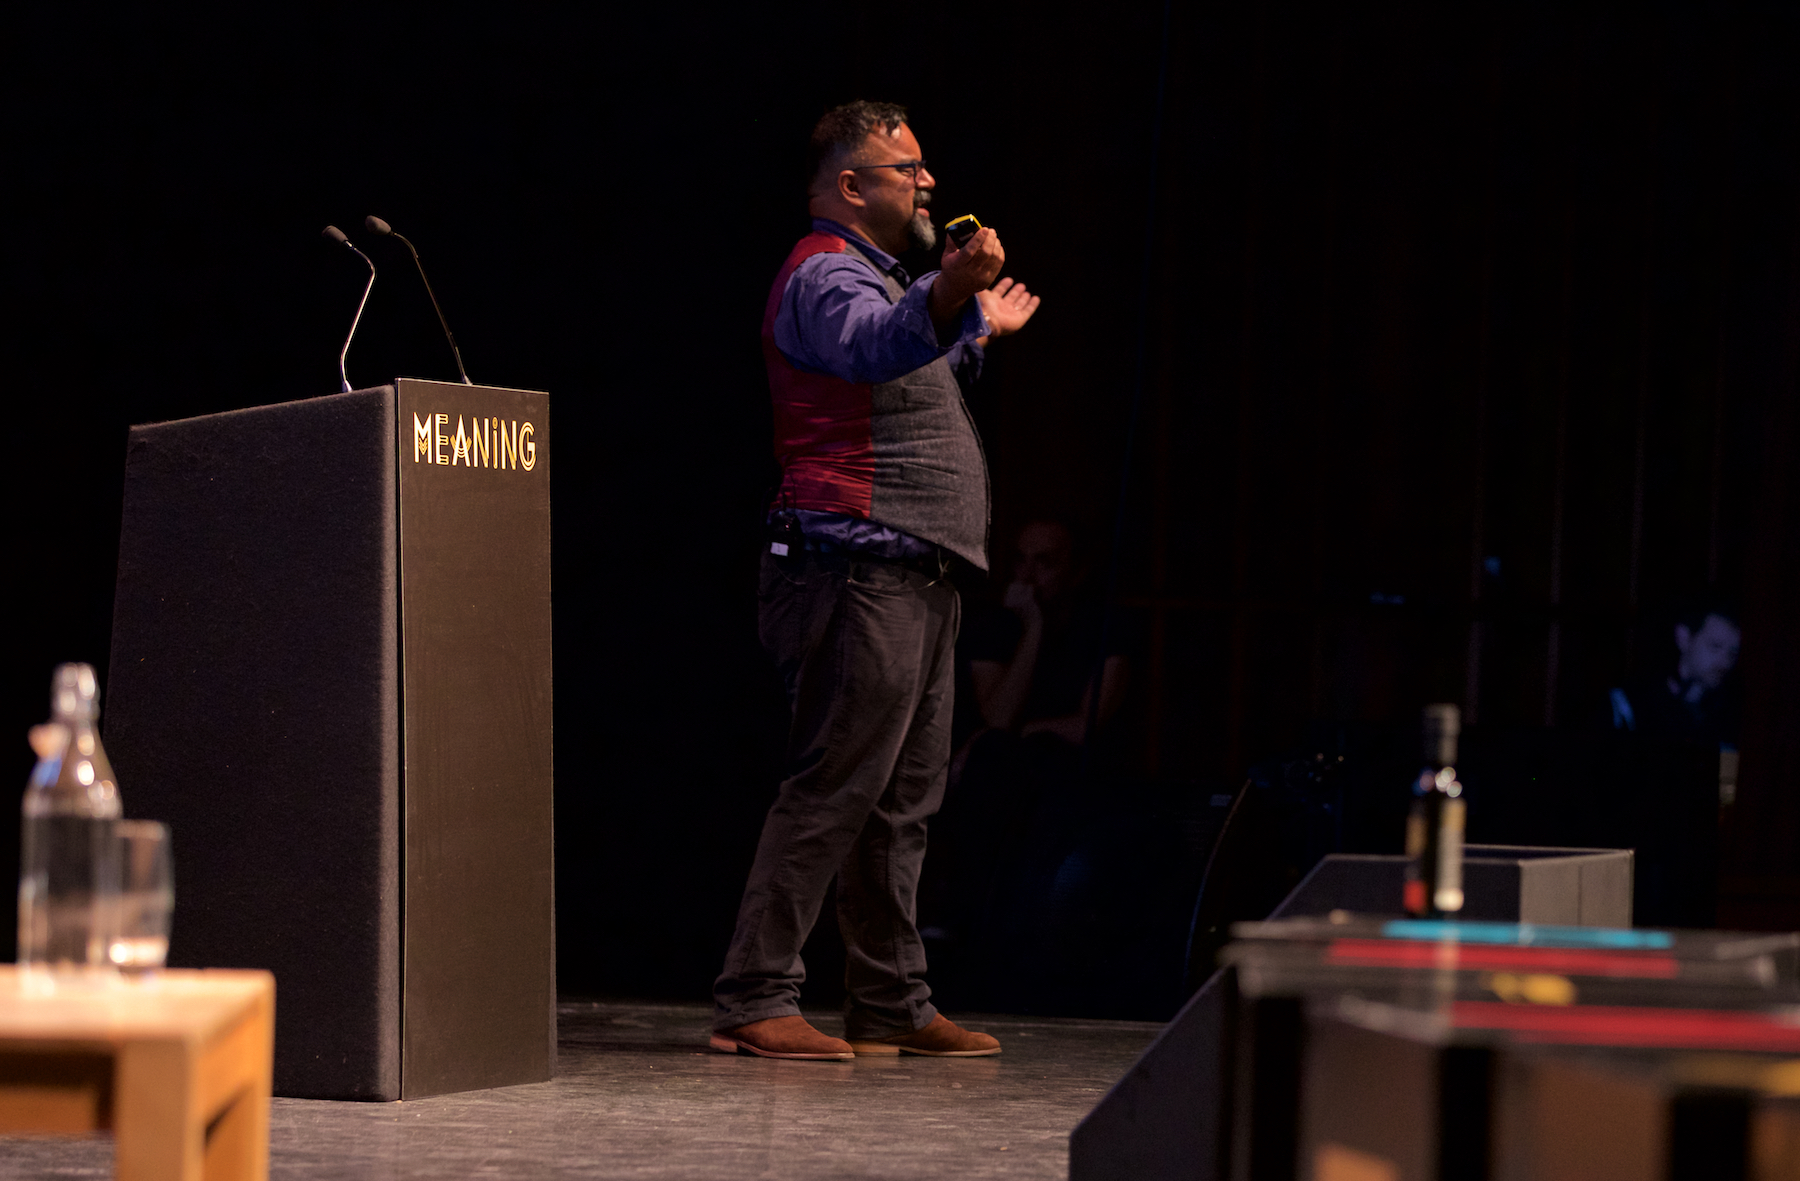 Atif Choudhury at Meaning 2018